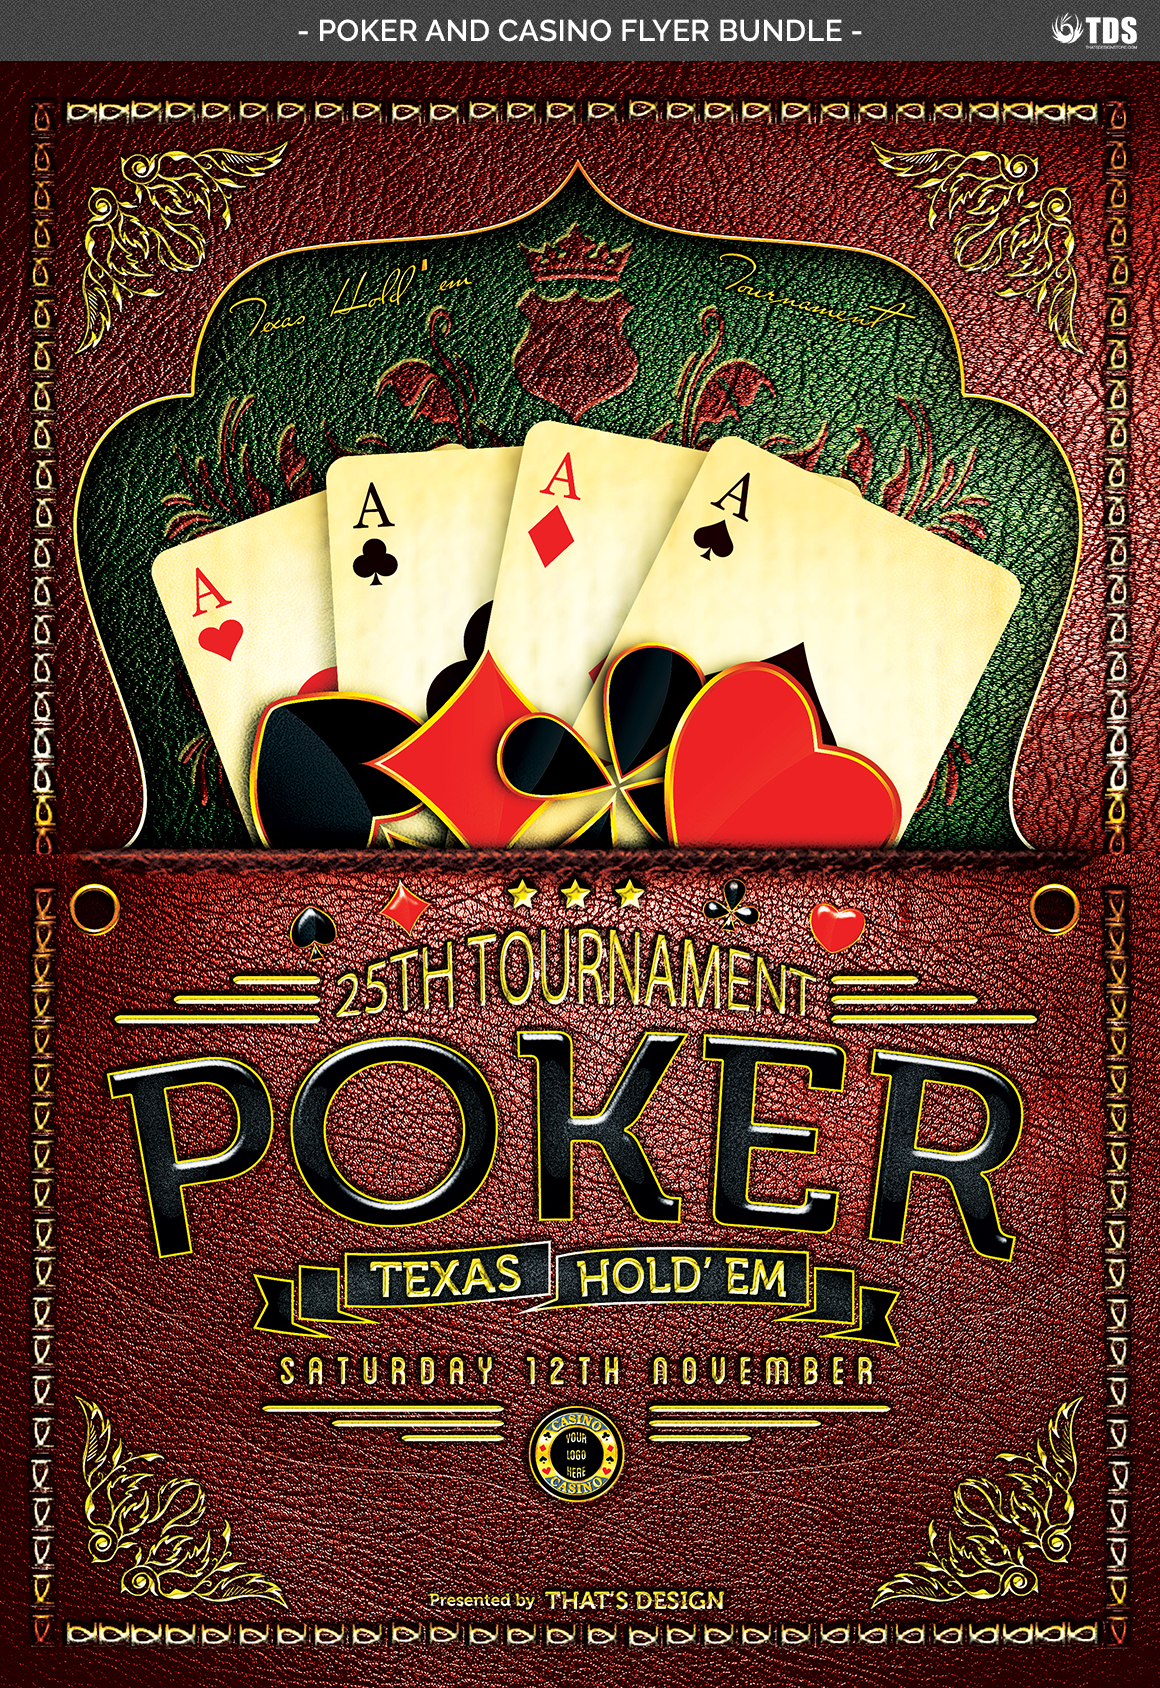 Poker and Casino Flyer Bundle example image 6